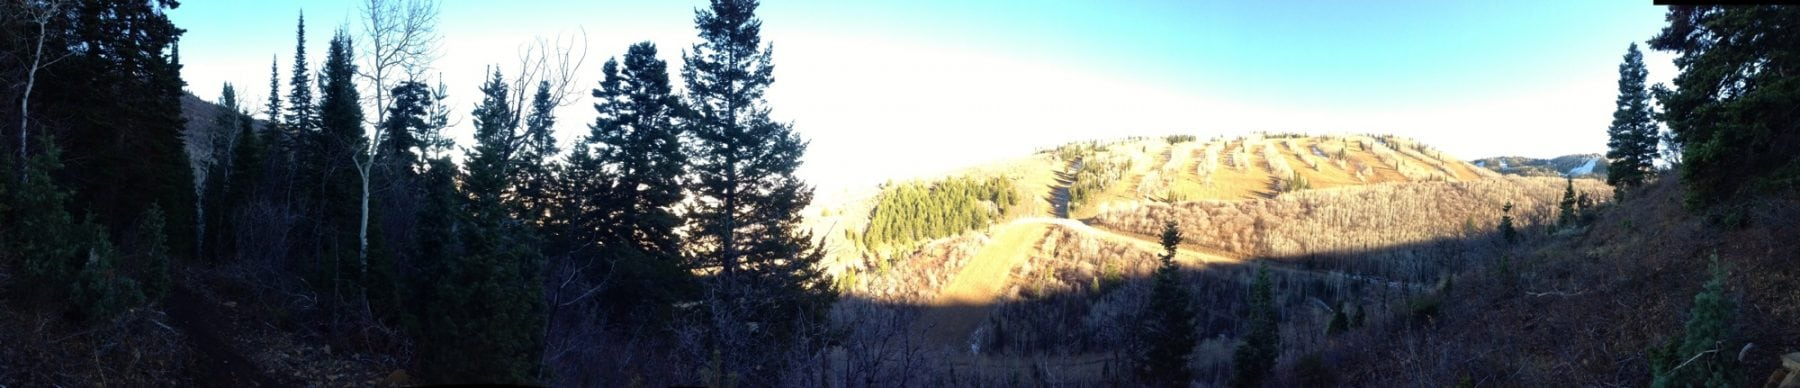 Armstrong Trail - Park City